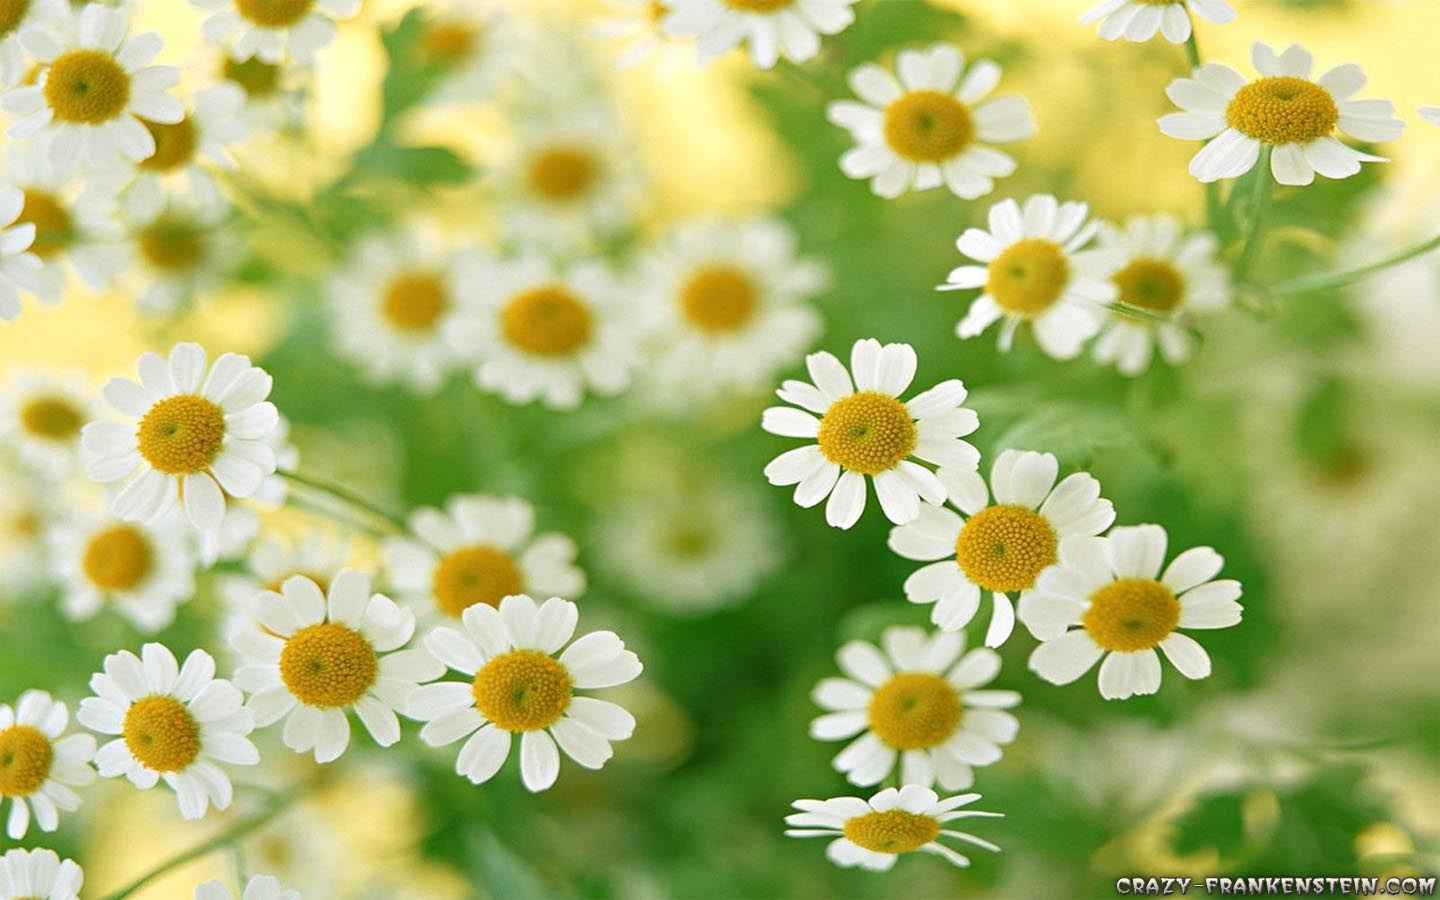 Daisy Flower 12 Free Hd Wallpaper Hdflowerwallpaper